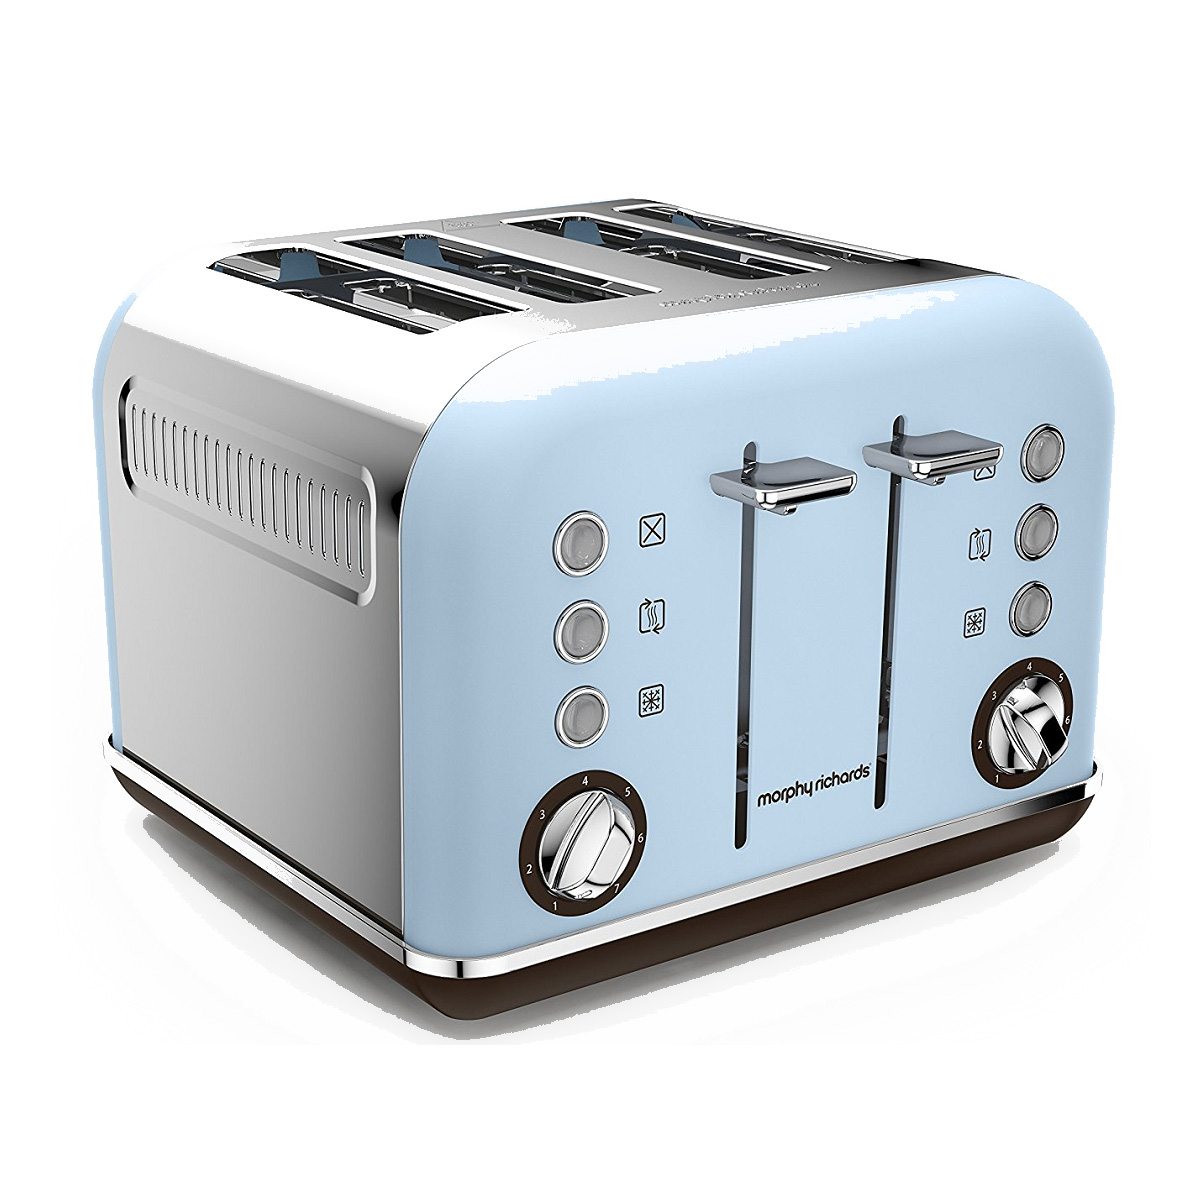 Morphy Richards 242100 Azure Accents Toaster